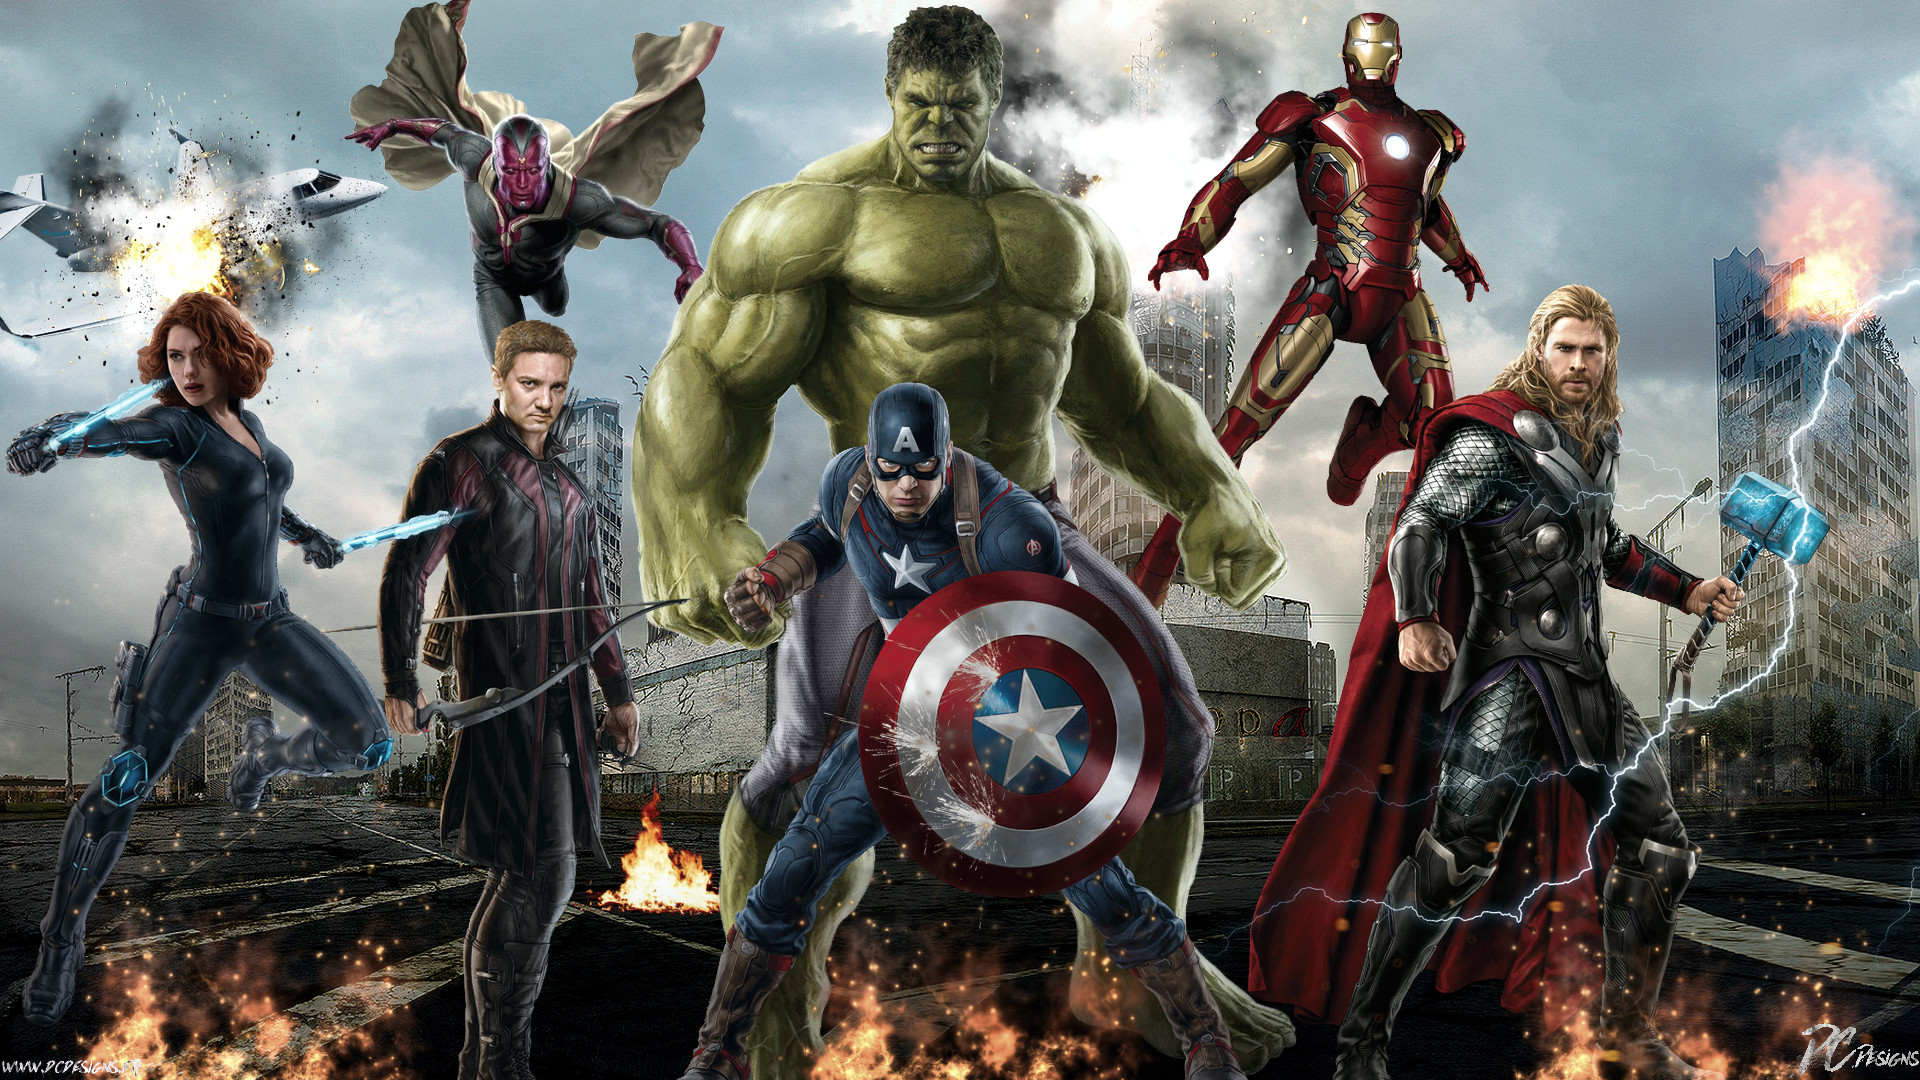 Marvel Android Wallpapers Group   HD Wallpapers   Pinterest   Wallpaper,  Wallpapers android and Mobile wallpaper